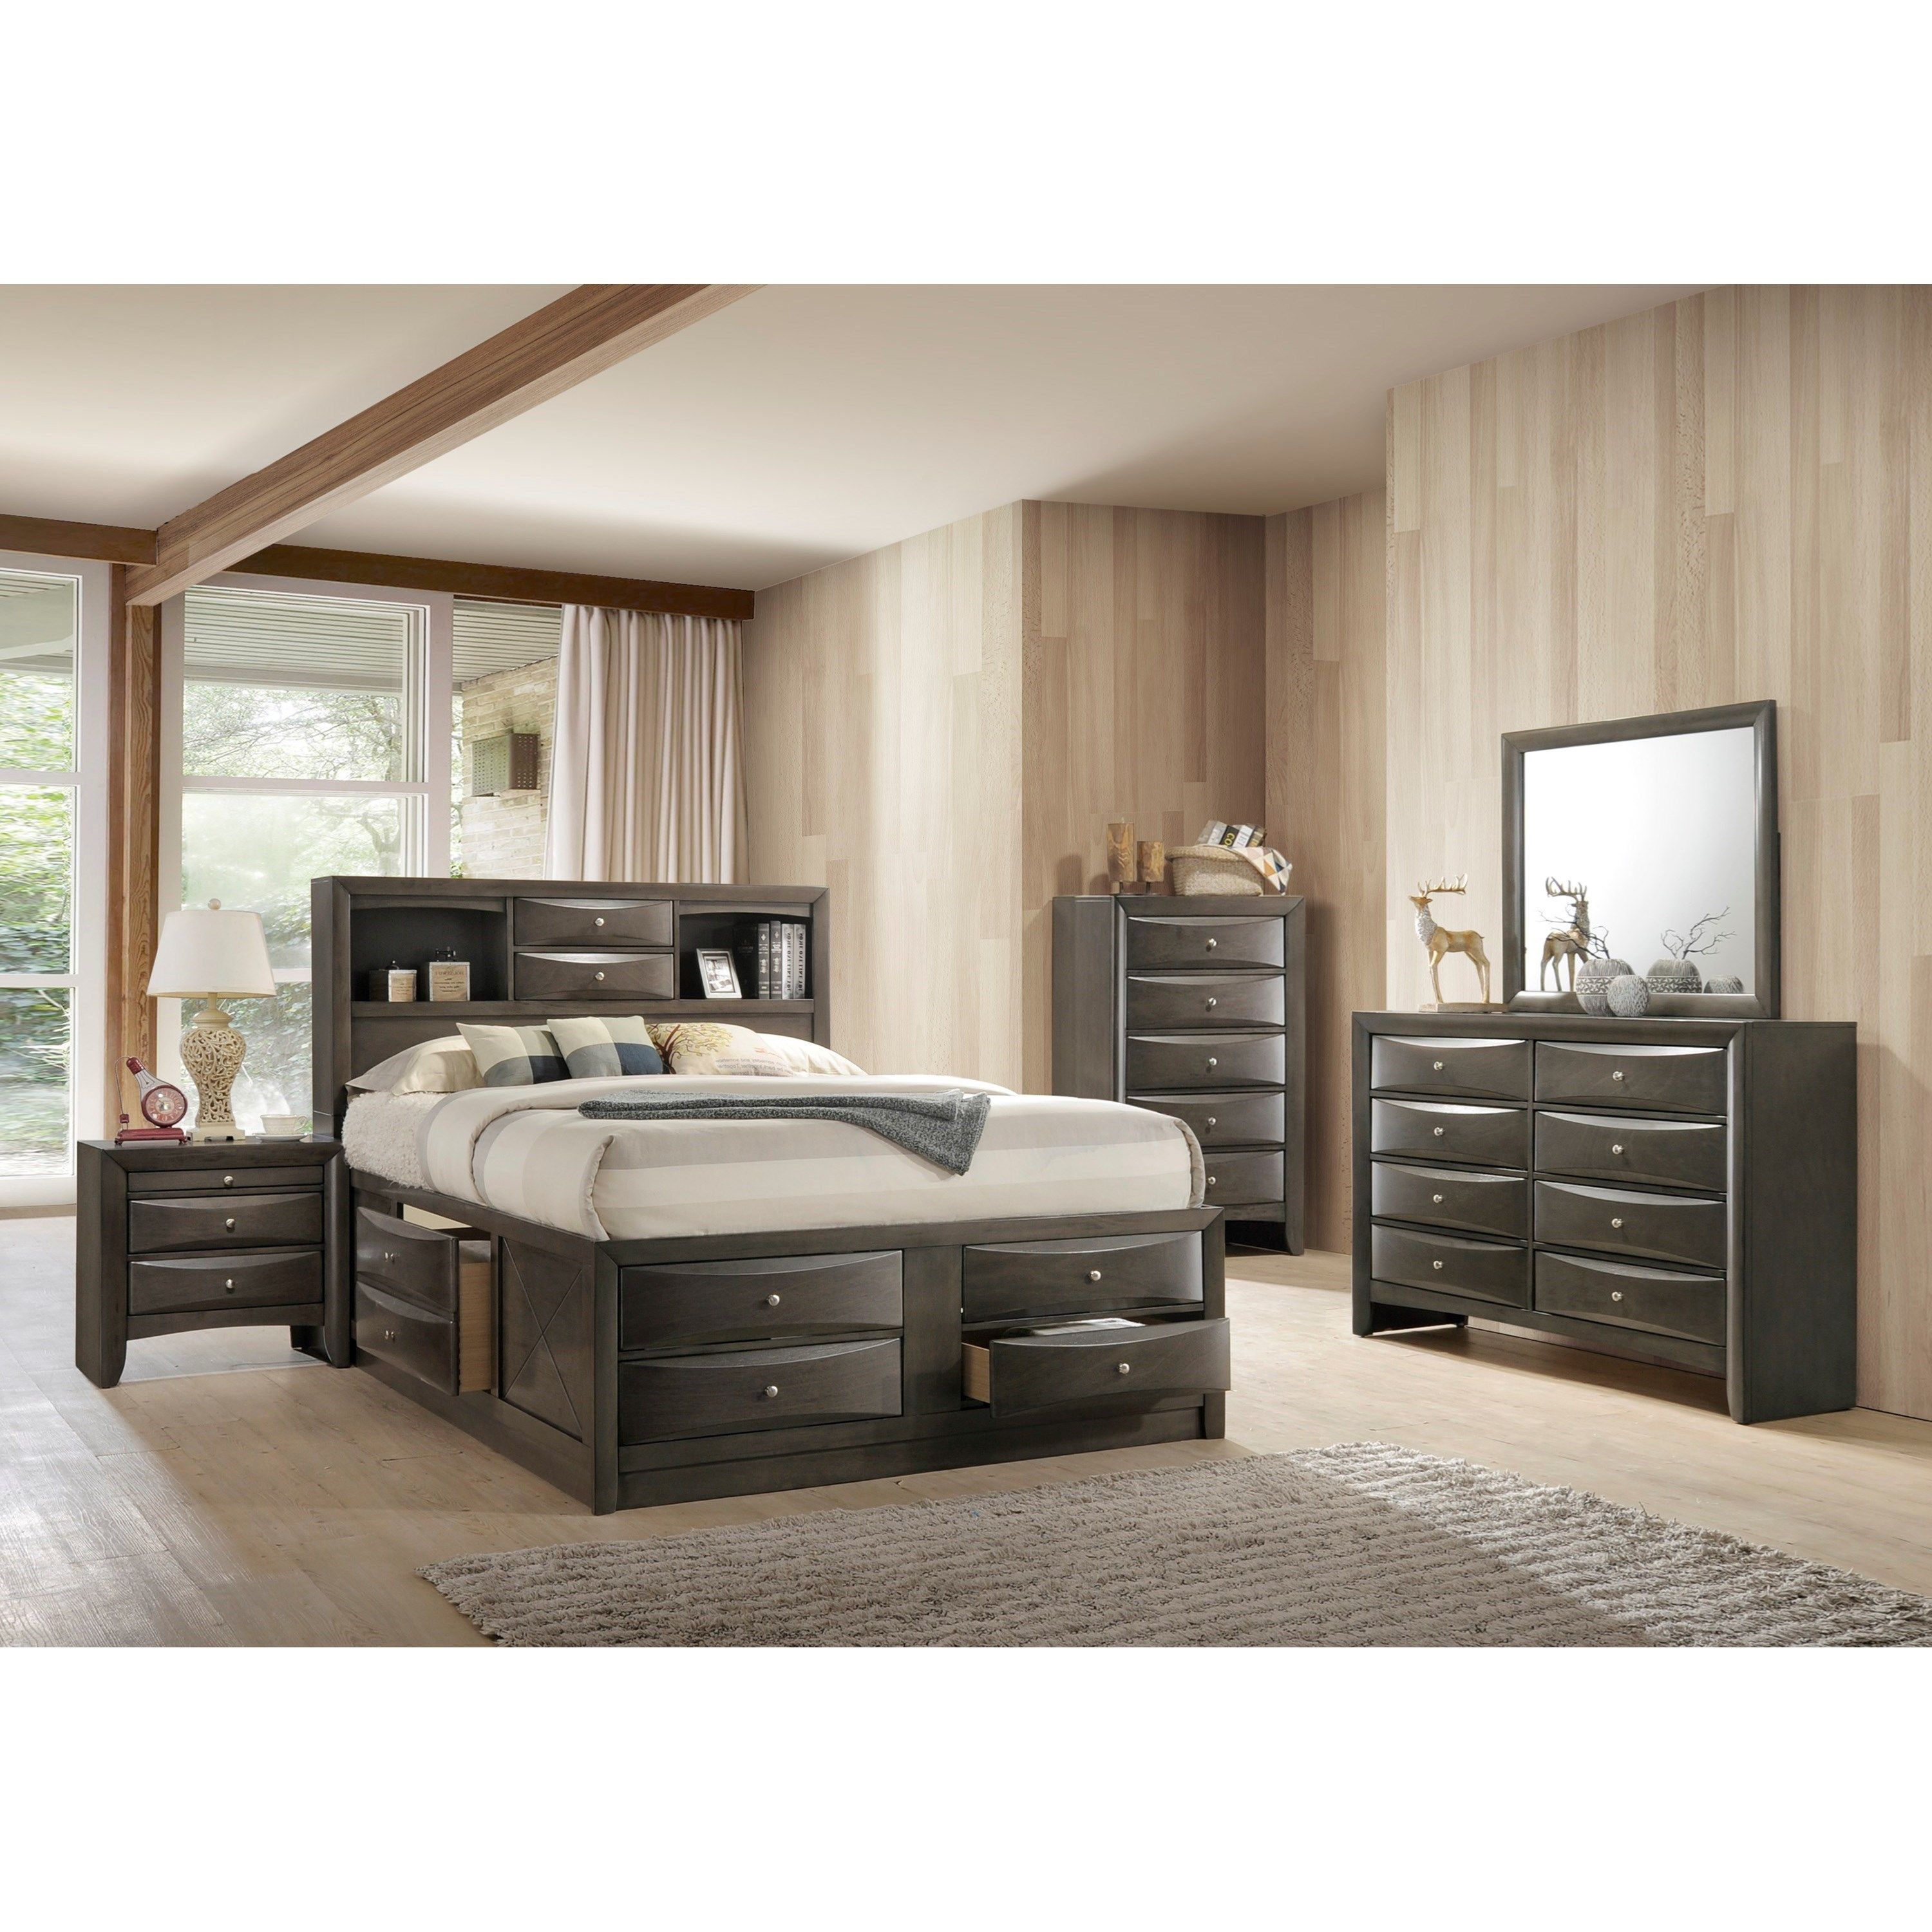 Pin by Lonnel on Storage room King bedroom sets, Bedroom